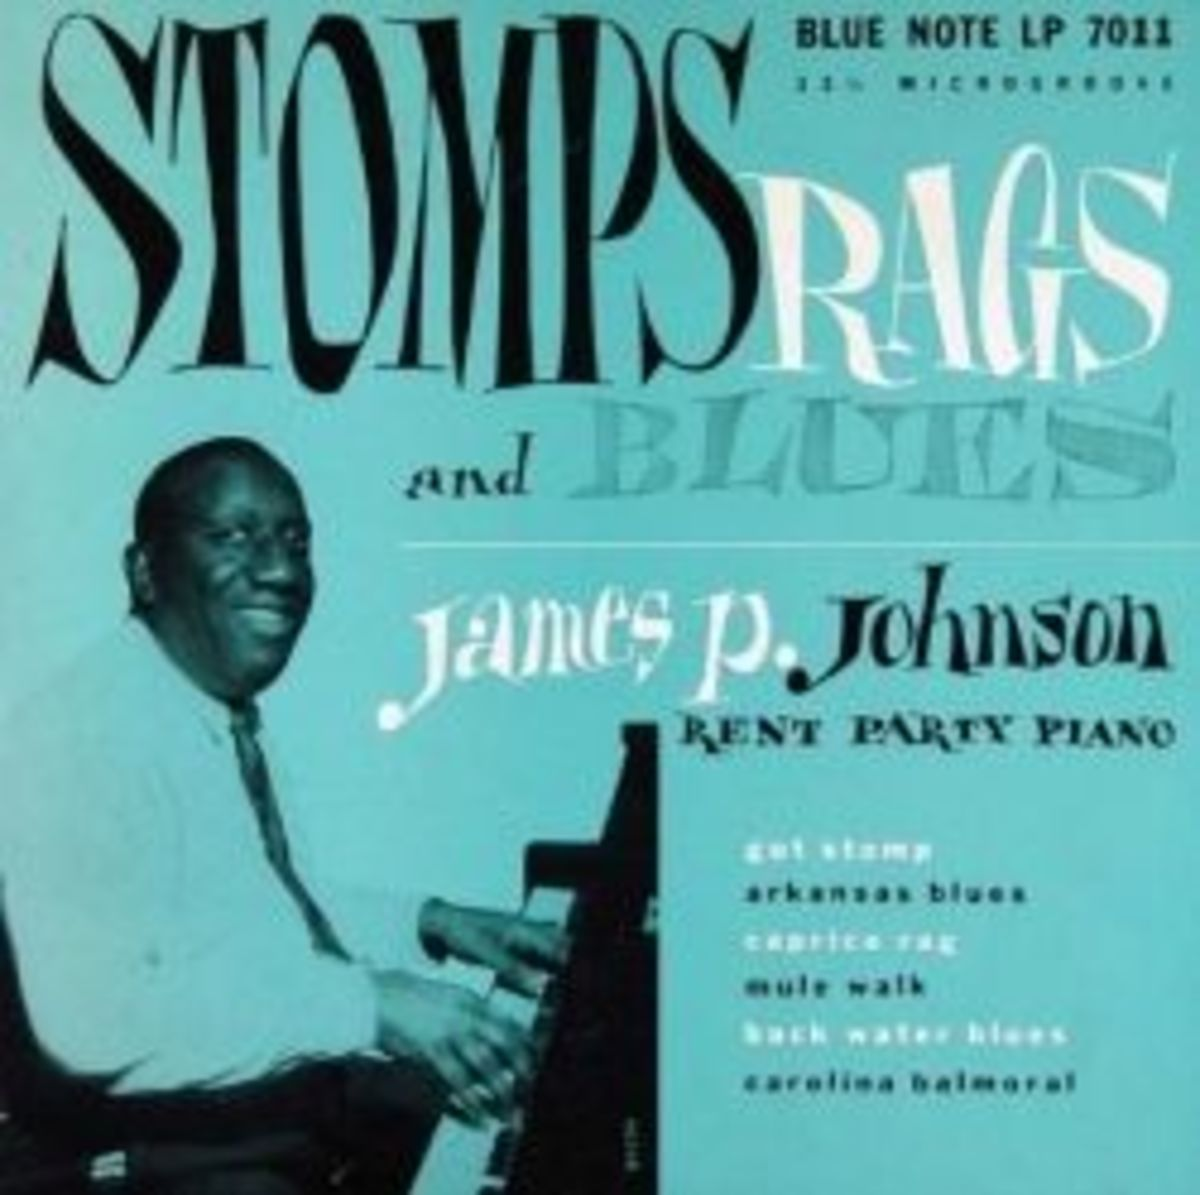 "James P Johnson ""Stomps Rags and Blues Rent Party Piano"" BLP 7011 LP (1951) Album Cover Design by Paul Bacon Photo by Francis Wolff"